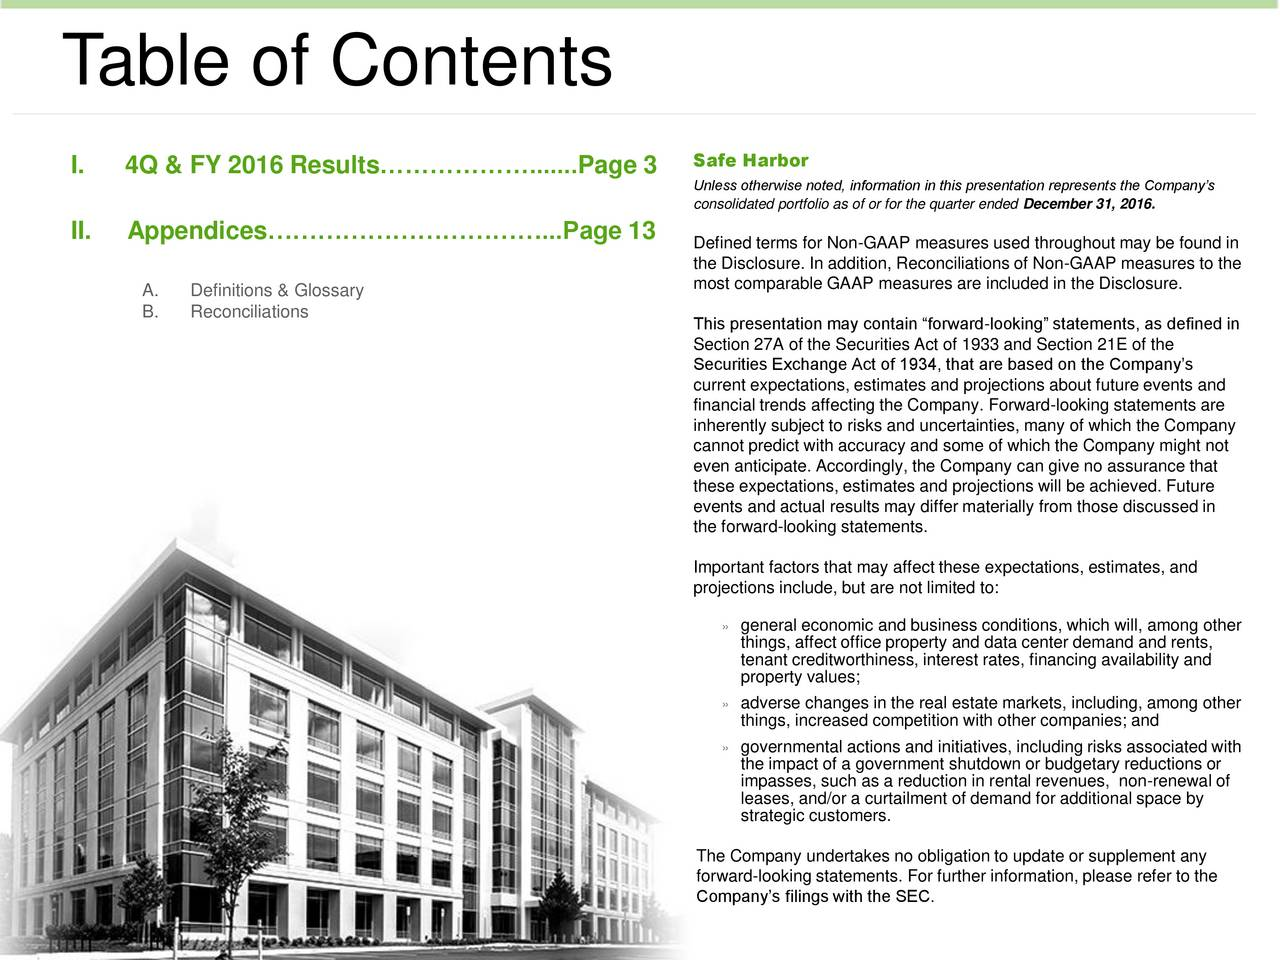 I. 4Q & FY 2016 Results.......Page 3 Safe Harbor Unless otherwise noted, information in this presentation represents the Companys consolidated portfolio as of or for the quarter ended December 31, 2016. II. Appendices...Page 13 Defined terms for Non-GAAP measures used throughout may be found in the Disclosure. In addition, Reconciliations of Non-GAAP measures to the A. Definitions & Glossary most comparable GAAP measures are included in the Disclosure. B. Reconciliations This presentation may contain forward-looking statements, as defined in Section 27A of the Securities Act of 1933 and Section 21E of the Securities Exchange Act of 1934, that are based on the Companys current expectations, estimates and projections about future events and financial trends affecting the Company. Forward-looking statements are inherently subject to risks and uncertainties, many of which the Company cannot predict with accuracy and some of which the Company might not even anticipate. Accordingly, the Company can give no assurance that these expectations, estimates and projections will be achieved. Future events and actual results may differ materially from those discussed in the forward-looking statements. Important factors that may affect these expectations, estimates, and projections include, but are not limited to: general economic and business conditions, which will, among other things, affect office property and data center demand and rents, tenant creditworthiness, interest rates, financing availability and property values; adverse changes in the real estate markets, including, among other things, increased competition with other companies; and governmental actions and initiatives, including risks associated with the impact of a government shutdown or budgetary reductions or impasses, such as a reduction in rental revenues, non-renewal of leases, and/or a curtailment of demand for additional space by strategic customers. The Company undertakes no obligation to update or supplemen